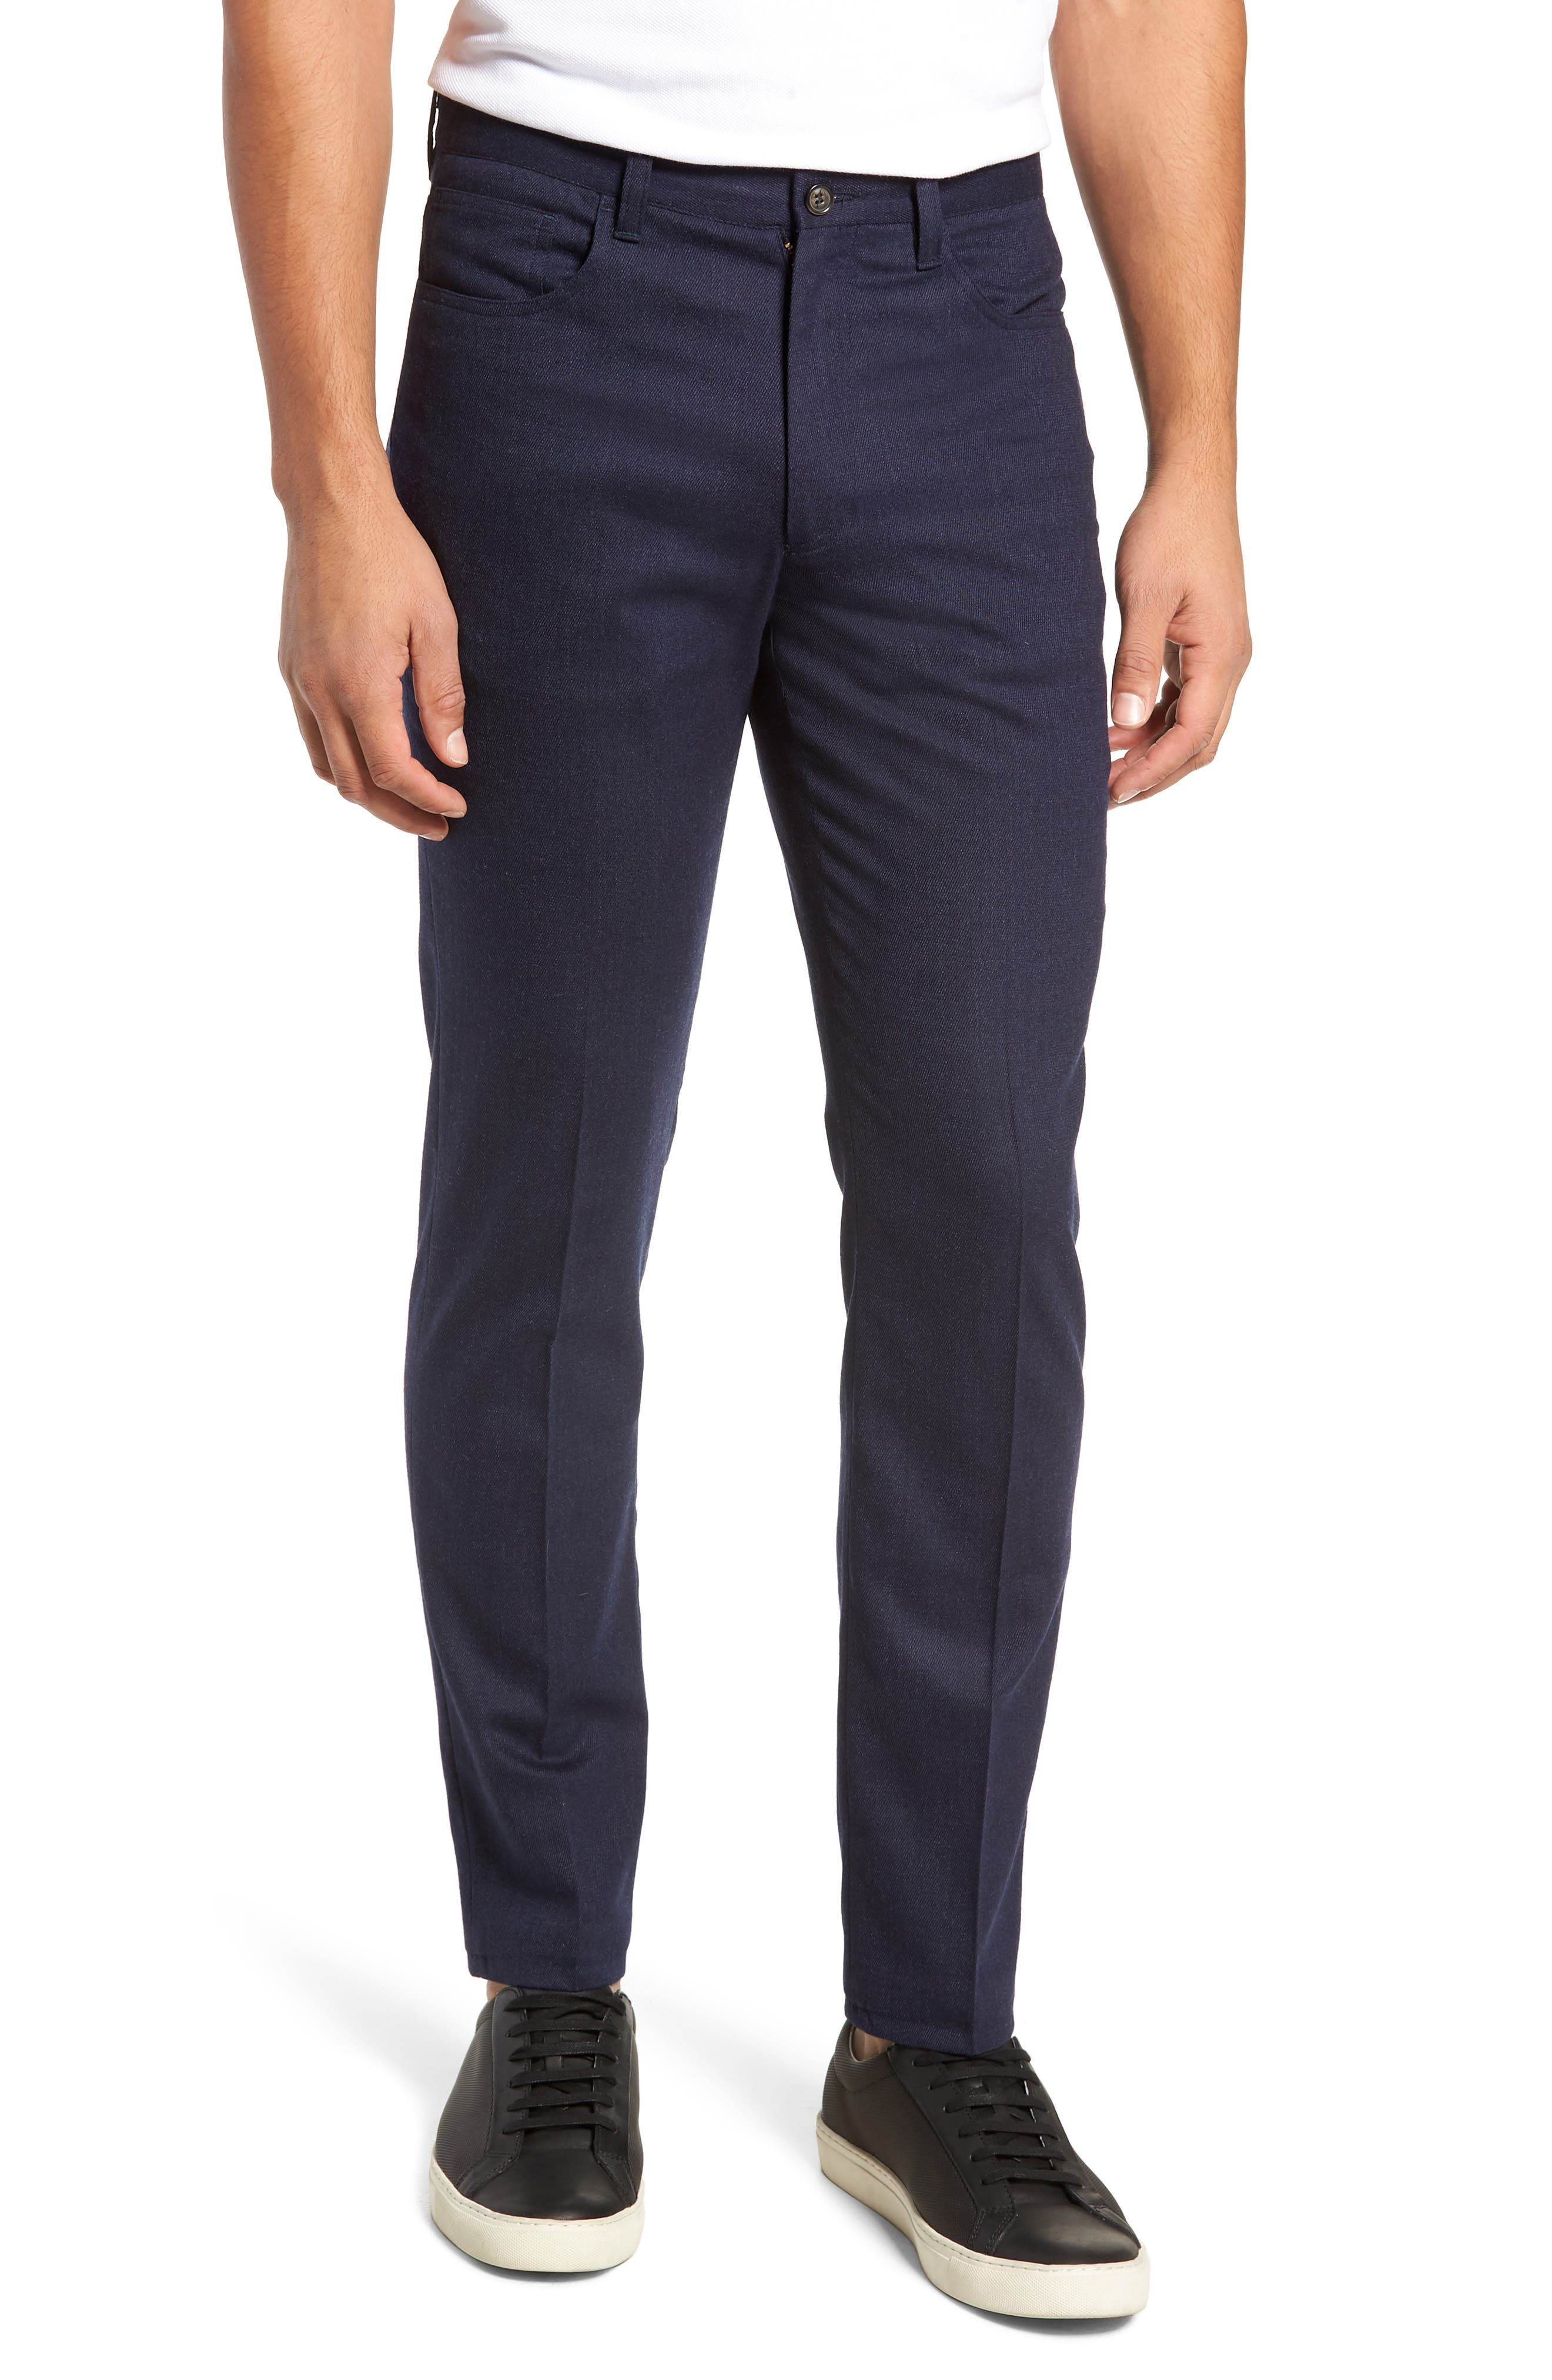 A stretch-infused blend of wool and cotton defines charming trousers with versatile appeal. Style Name: Berle Manufacturing Five-Pocket Stretch Solid Wool & Cotton Trousers. Style Number: 5710696. Available in stores.